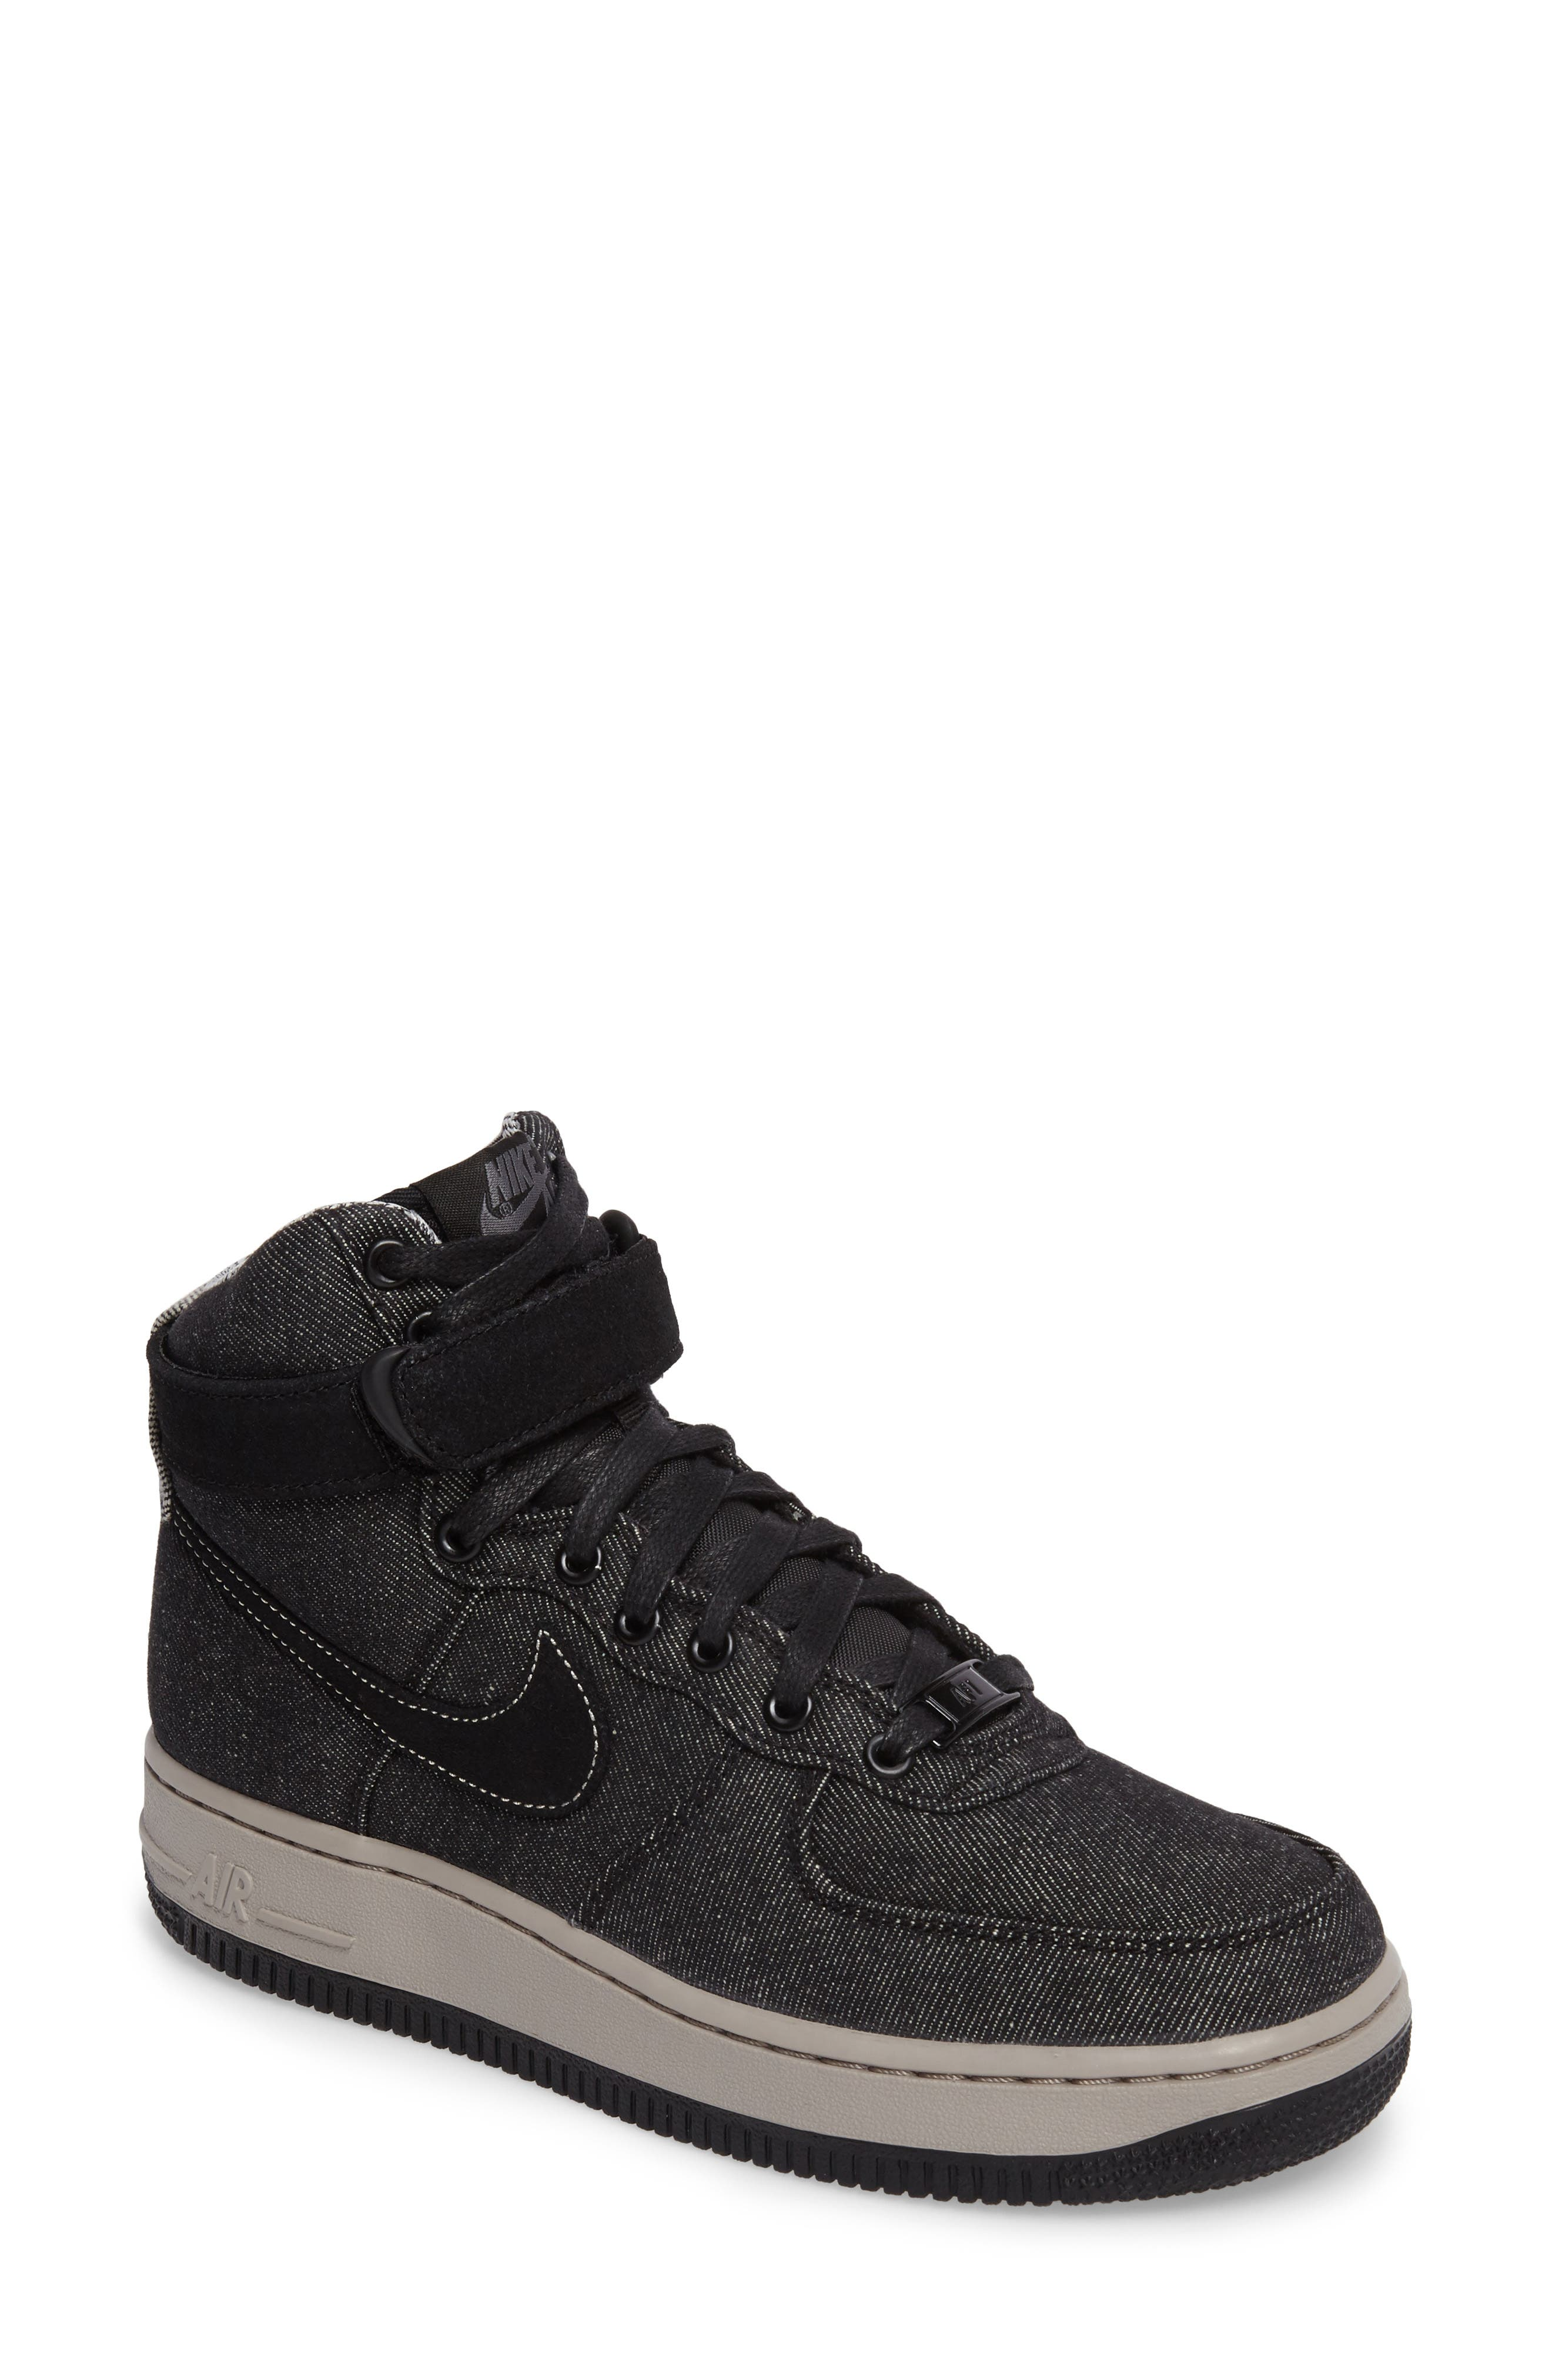 Air Force 1 High Top SE Sneaker,                             Main thumbnail 1, color,                             003